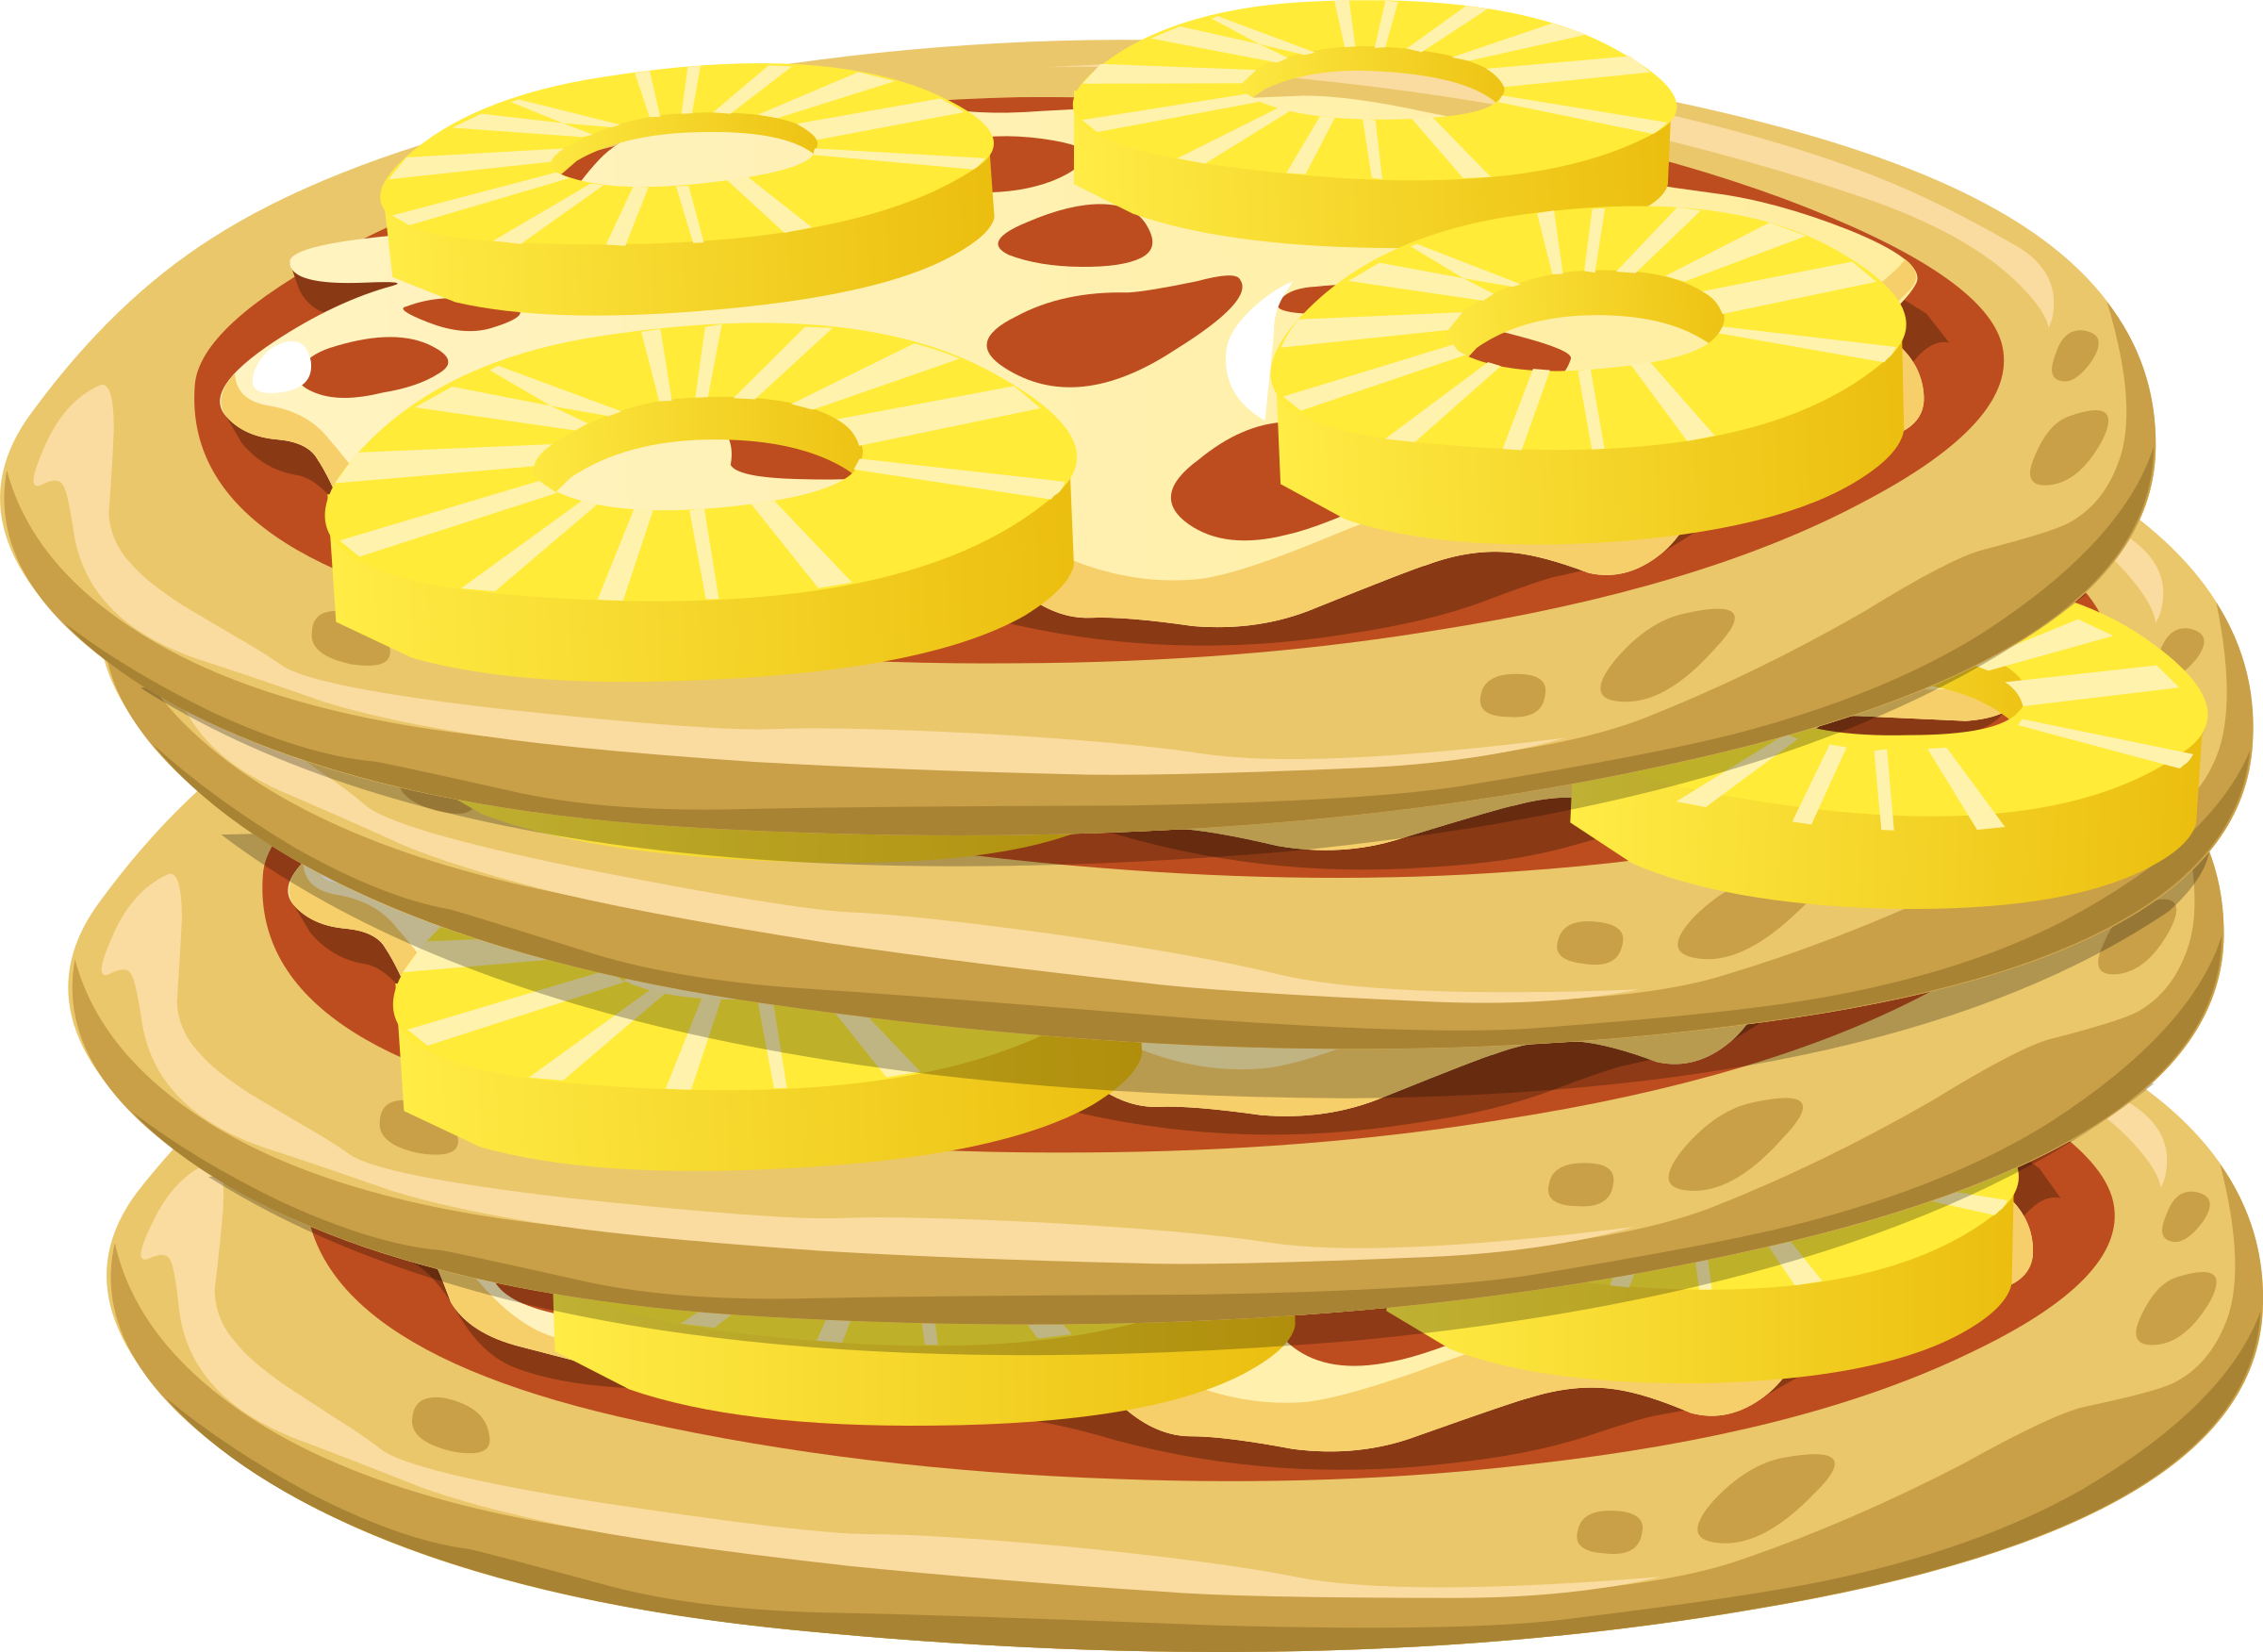 Food papl upside down. Mushrooms clipart pizza topping